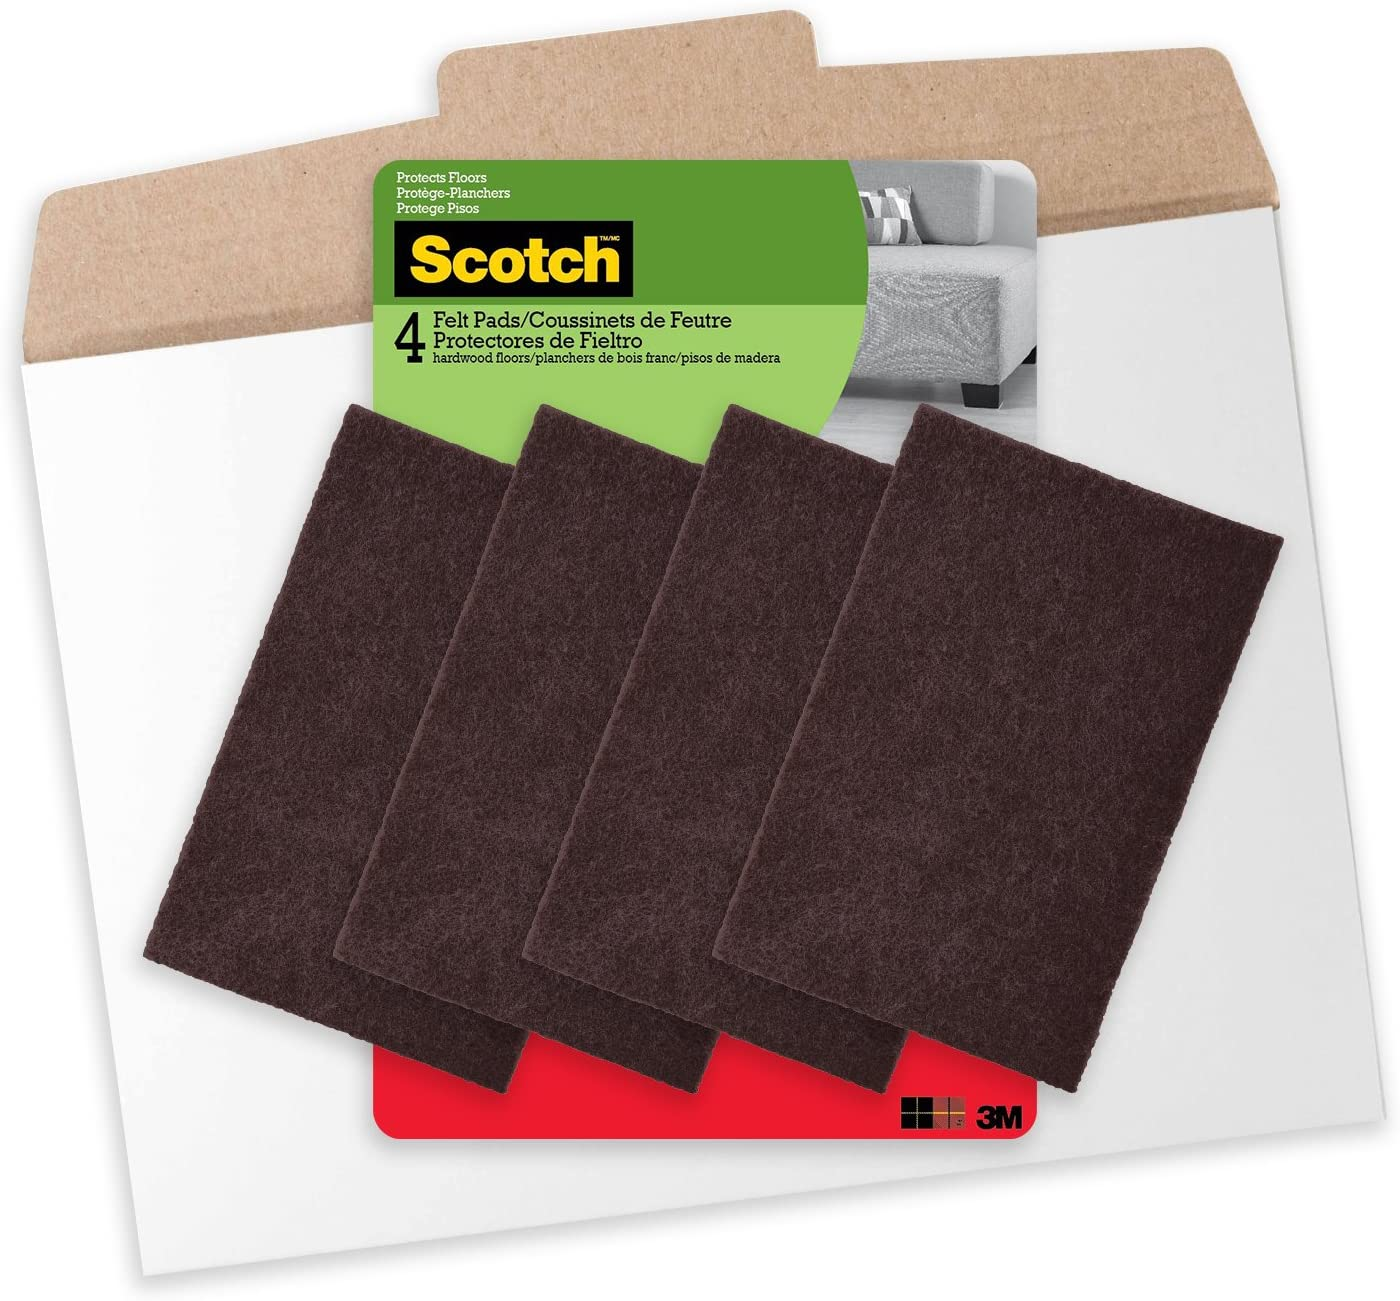 Scotch, FP830-4NA, 4 x 6 Inch Felt Pads in Easy to Open Packaging, 4 Pads, Brown